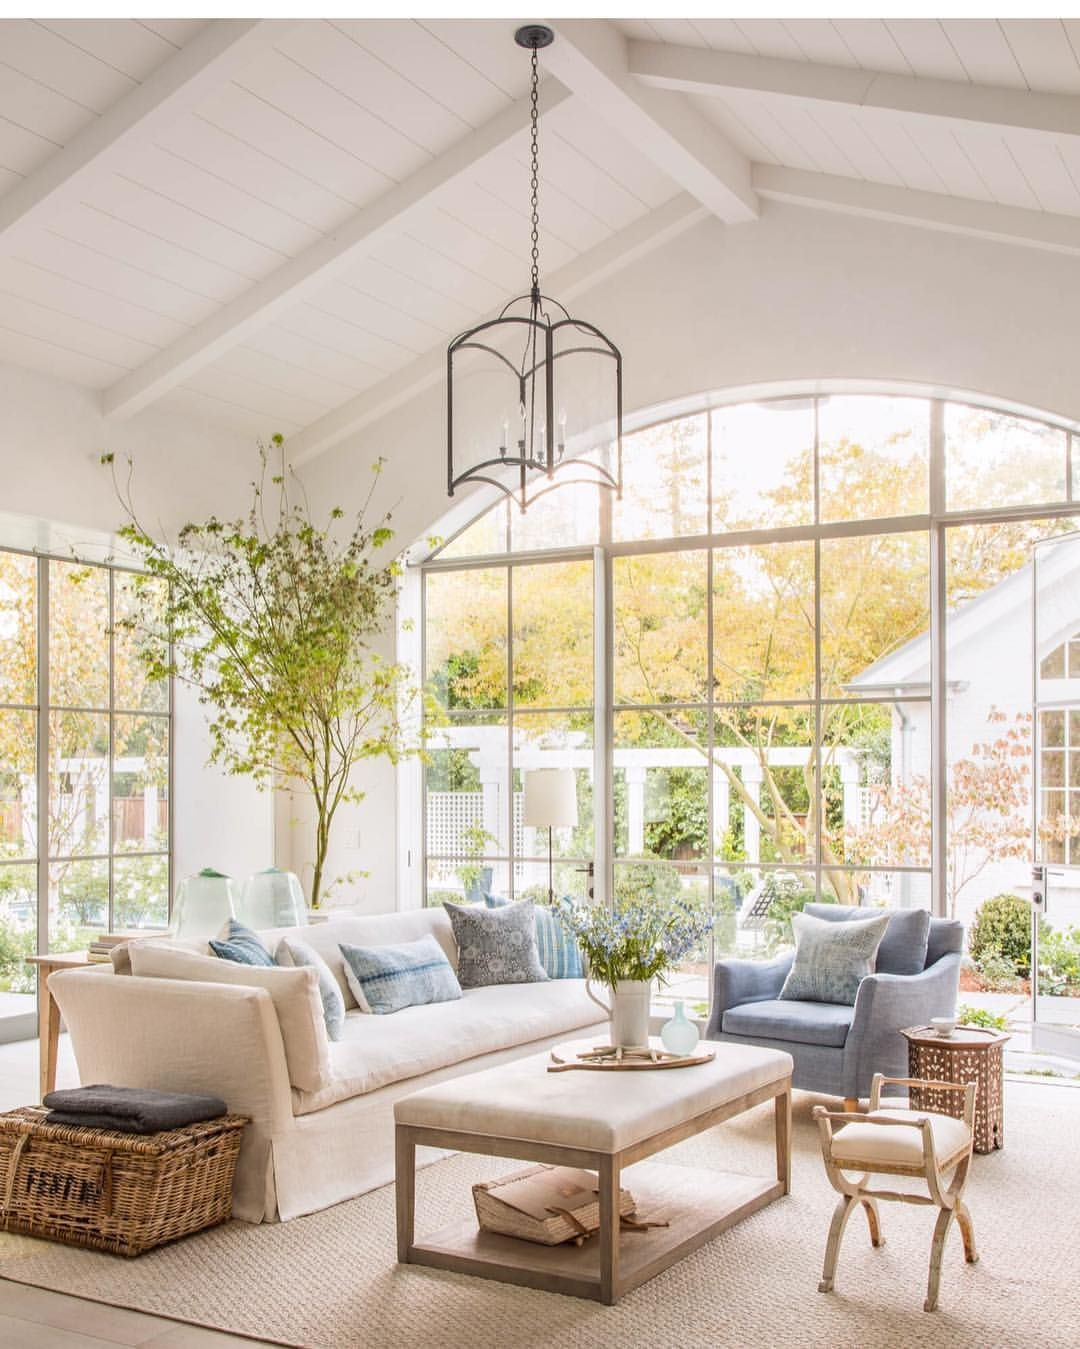 Stunning Sunroom Design Ideas Sunroom Likewise Called A Sun Room Sun Porch Or Sunroom Farm House Living Room Farmhouse Style Living Room Shiplap Living Room